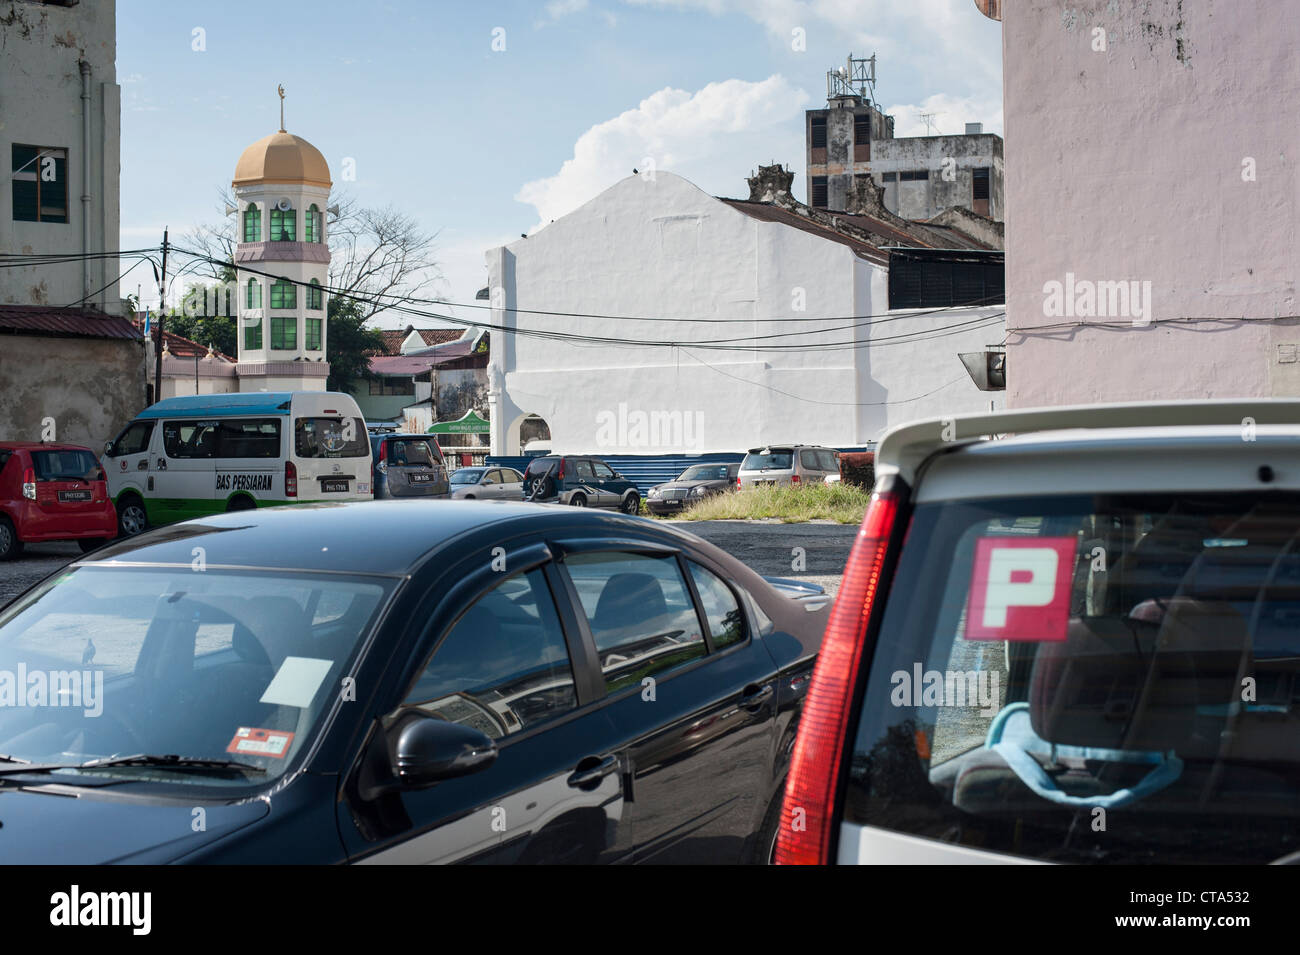 Malaysia, Penang, Georgetown benggali mosque swamped by car park - Stock Image